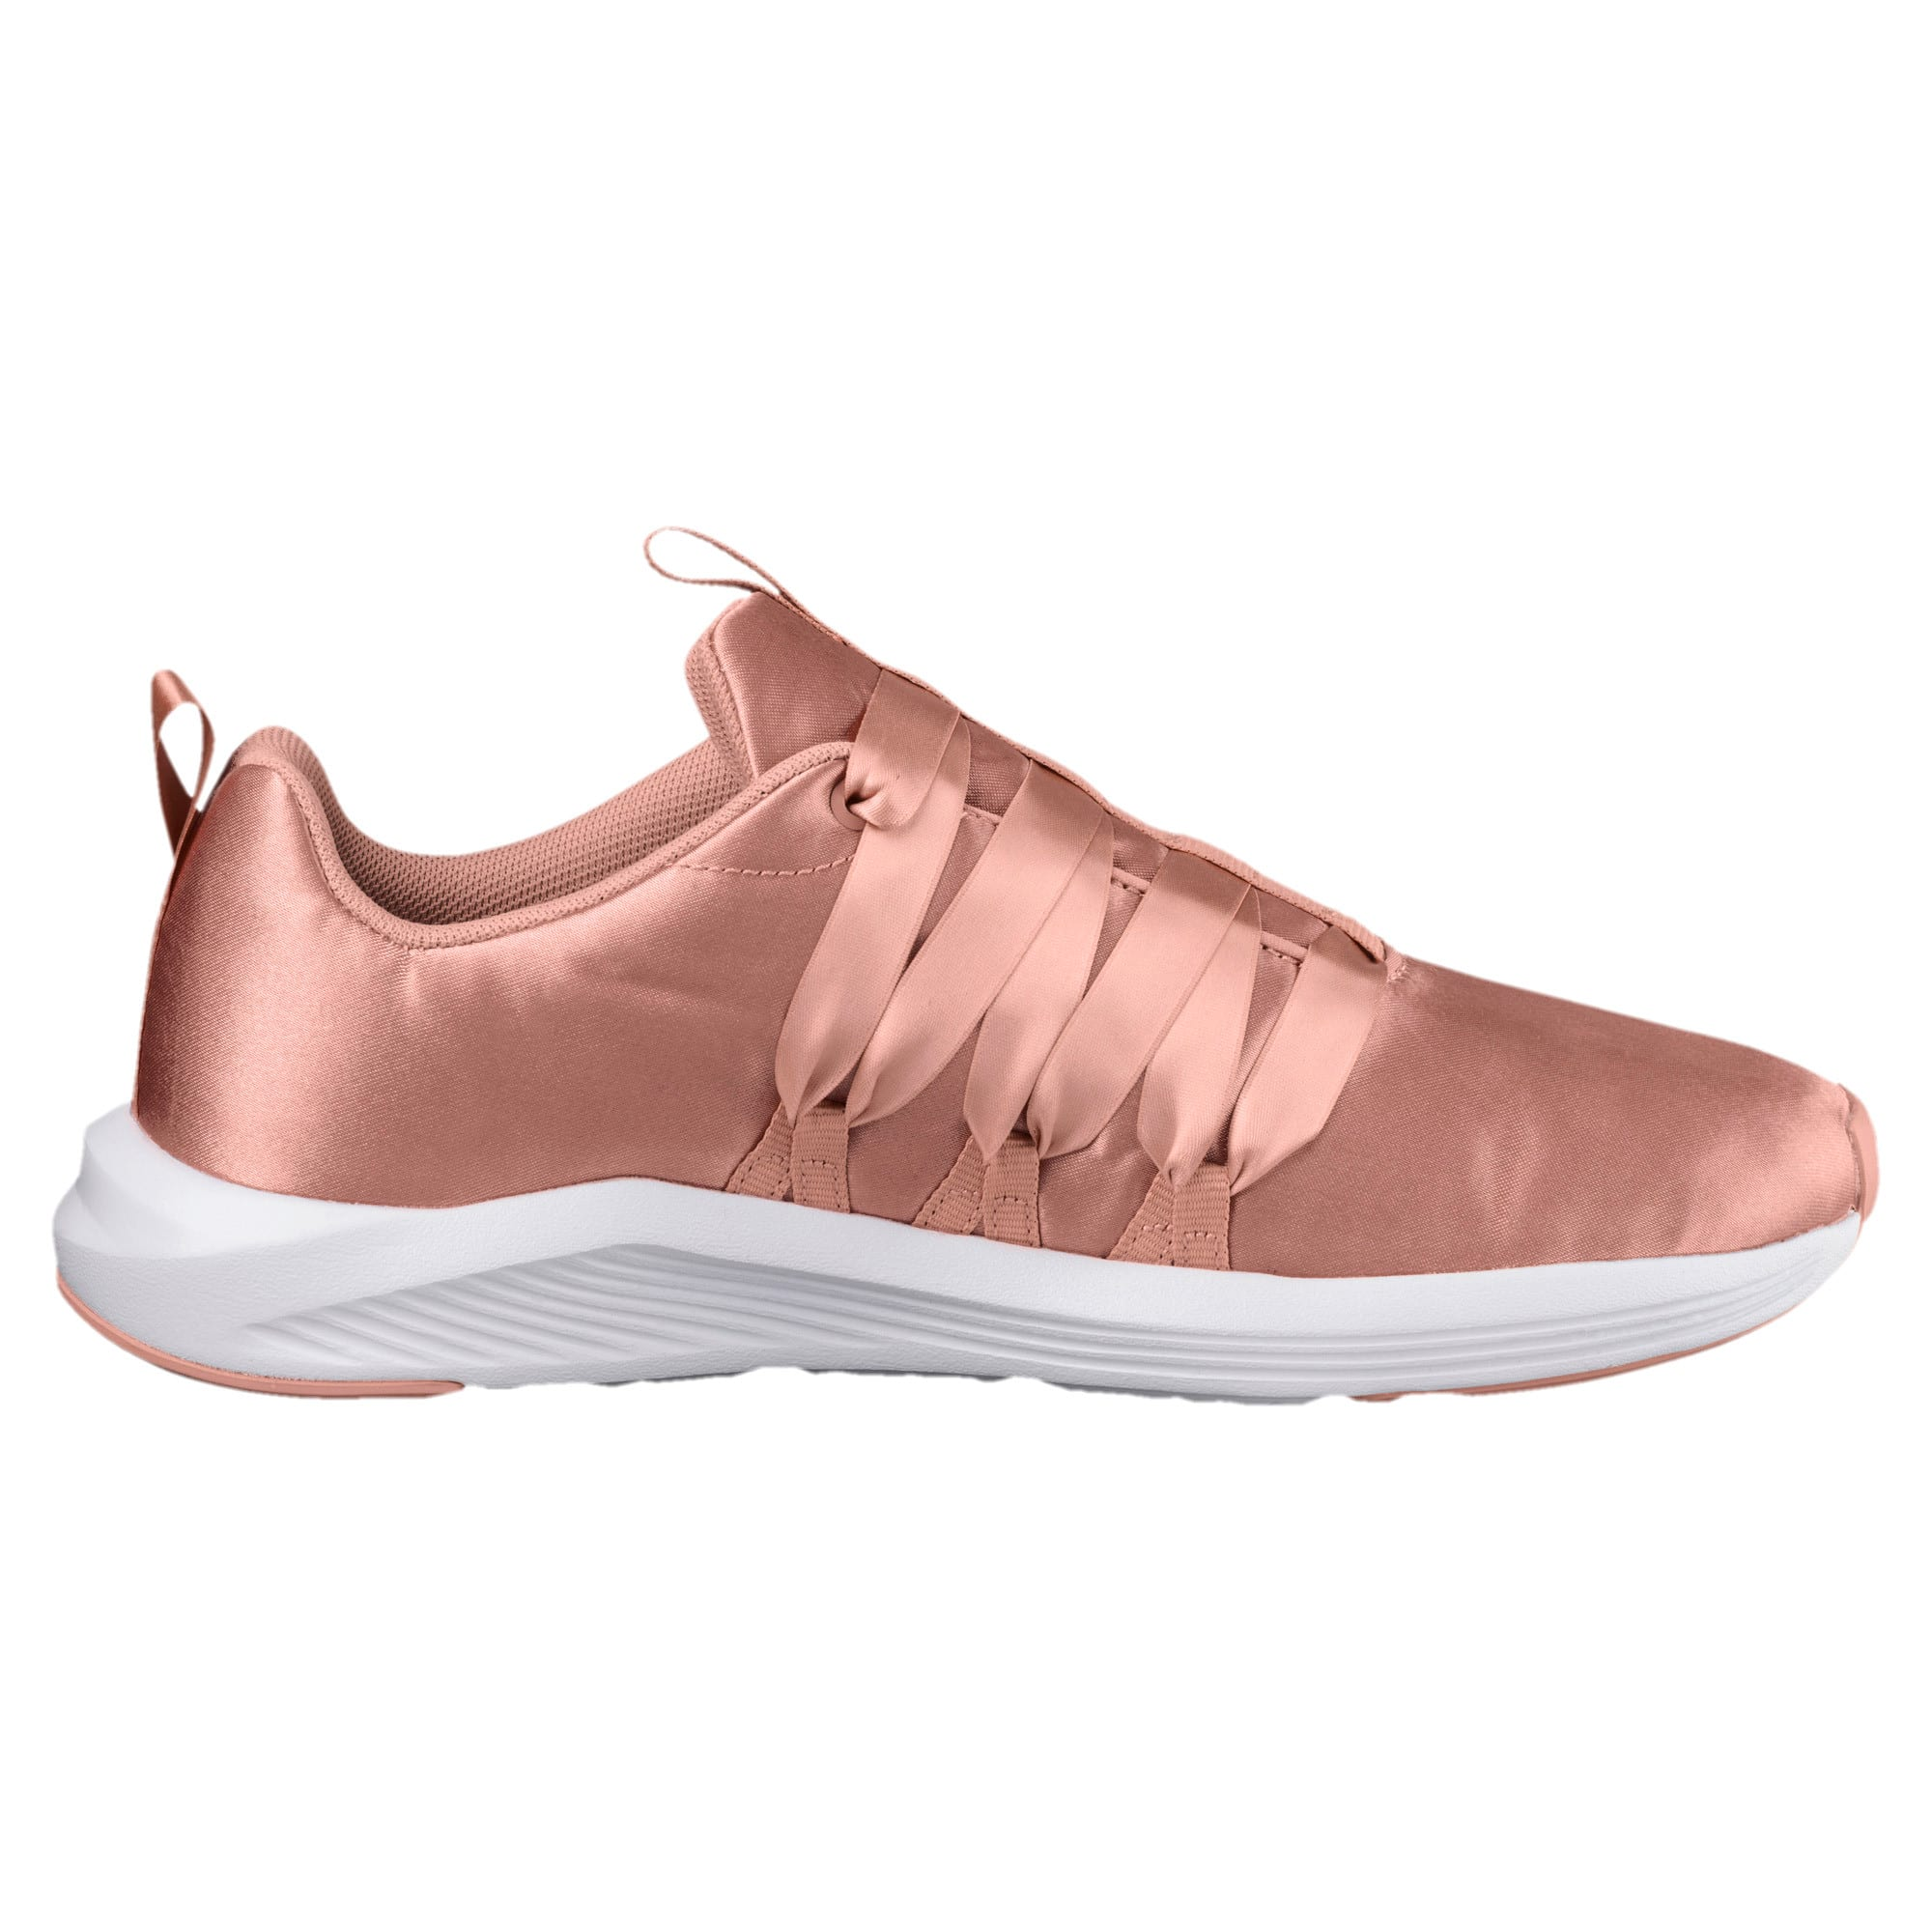 Thumbnail 3 of Prowl Alt Satin Women's Training Shoes, Peach Beige-Puma White, medium-IND